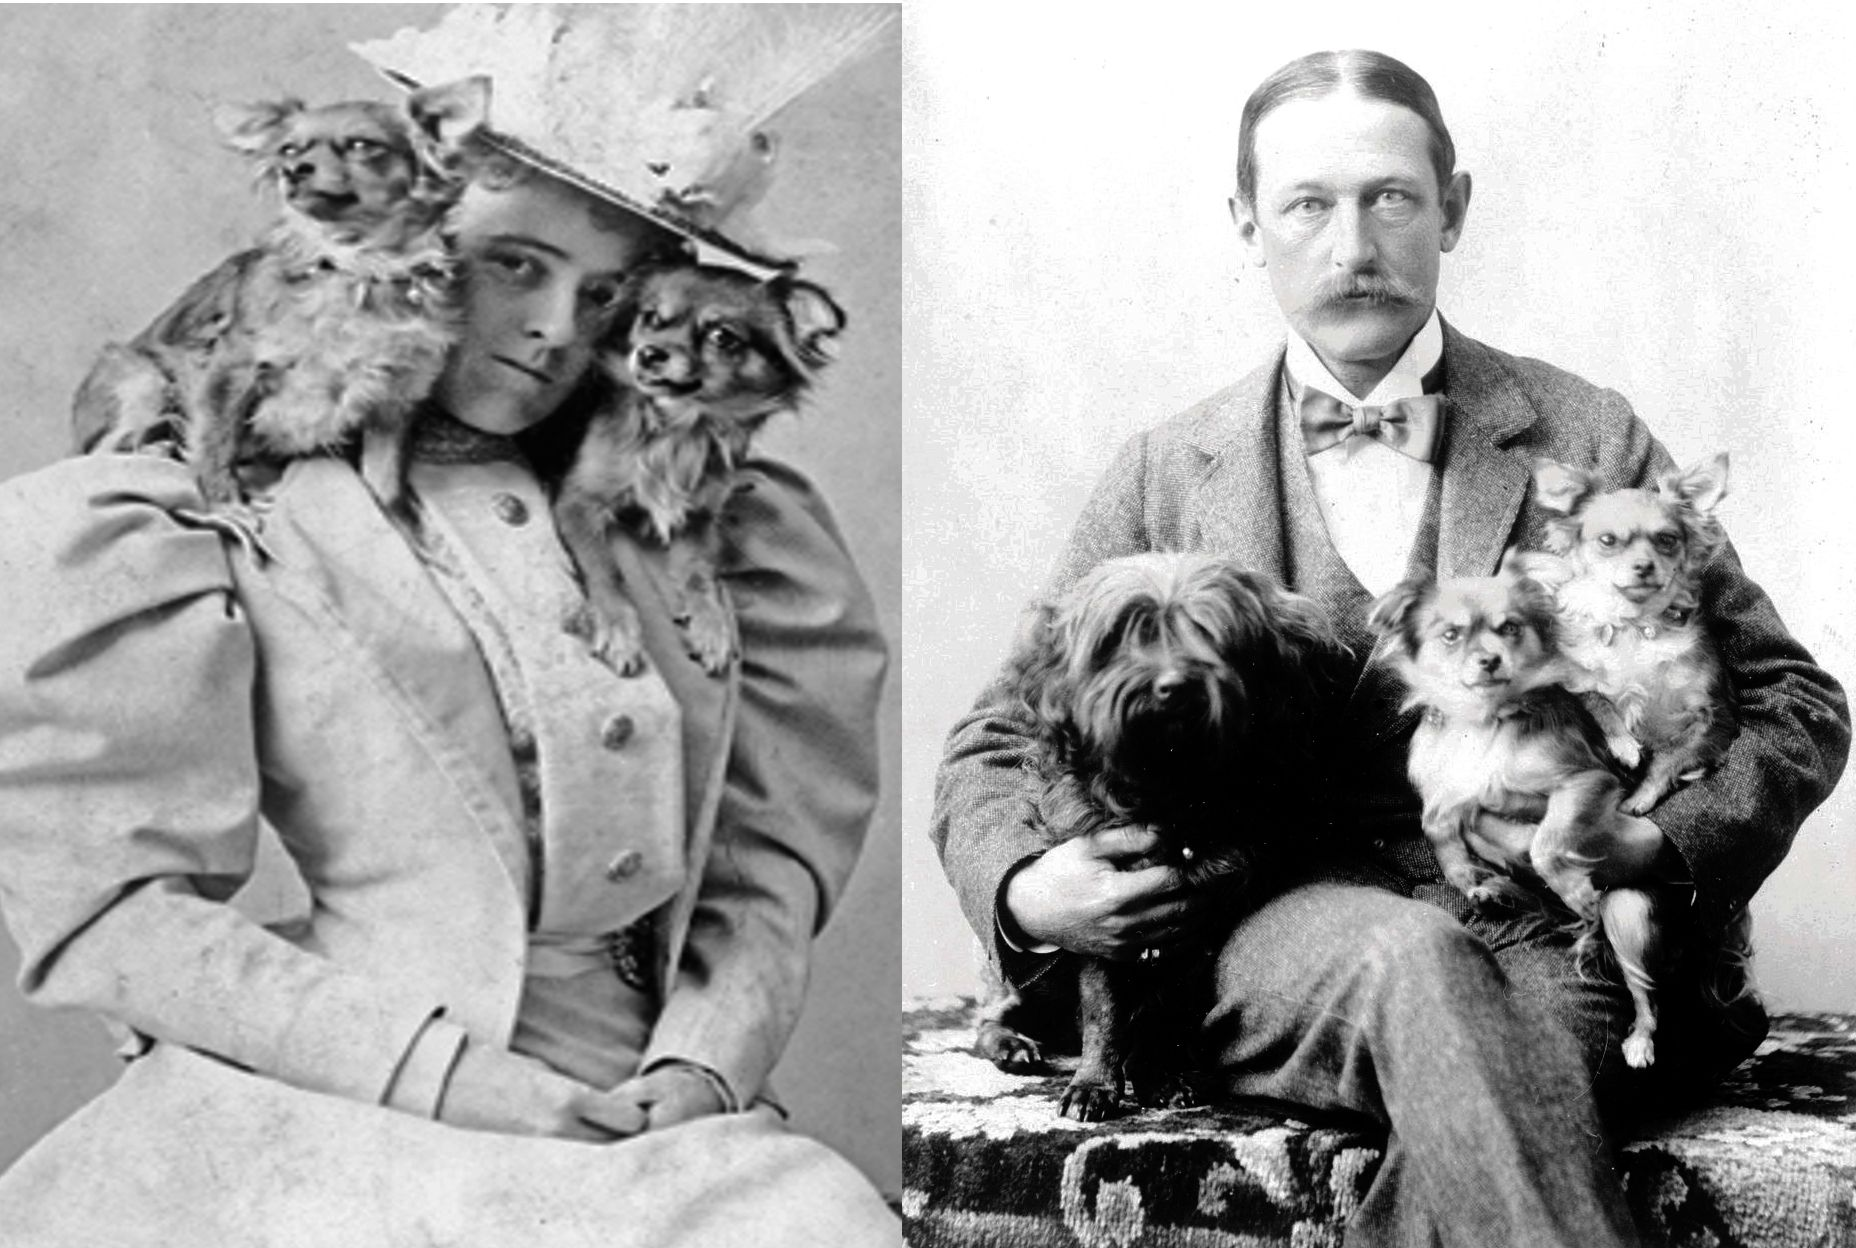 29th of April 1885, Edith Wharton, author of The House of Mirth, married Edward Robbins Wharton. It was passionless marriage made bearable by her dogs, Mimi and Miza, and Edward's dog, Jules.